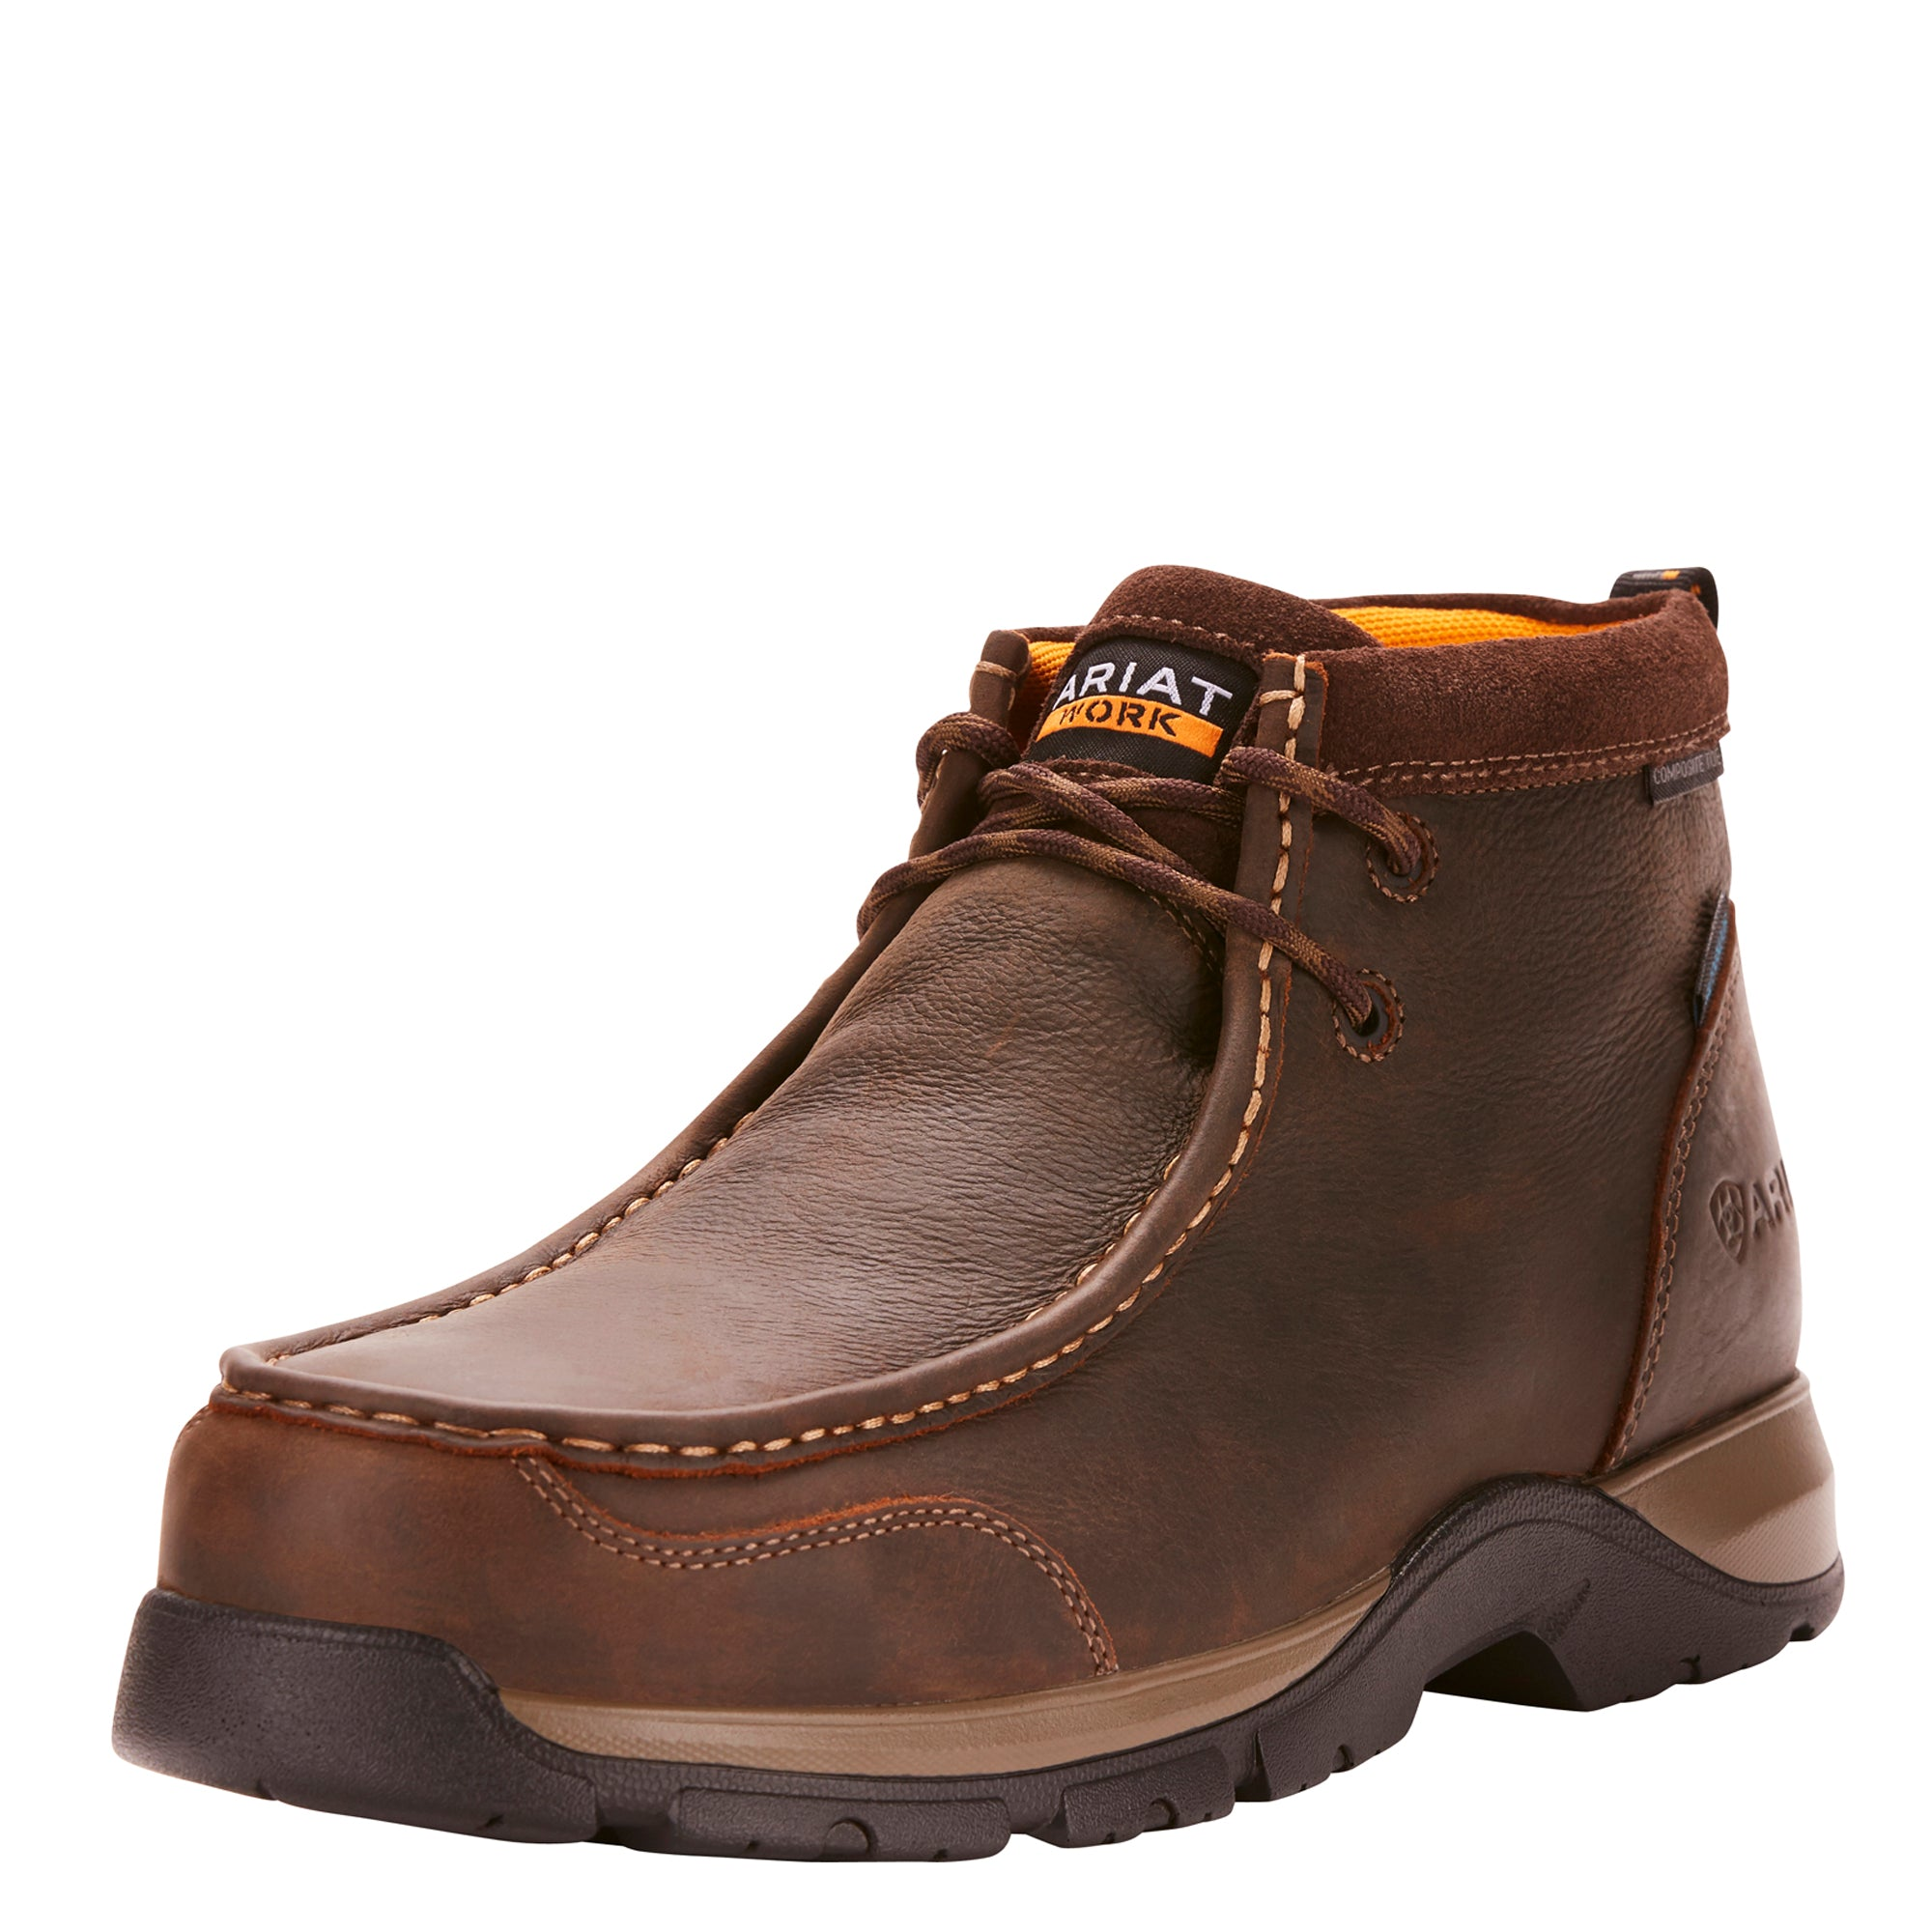 'Ariat' Edge LTE Moc Comp Toe - Brown